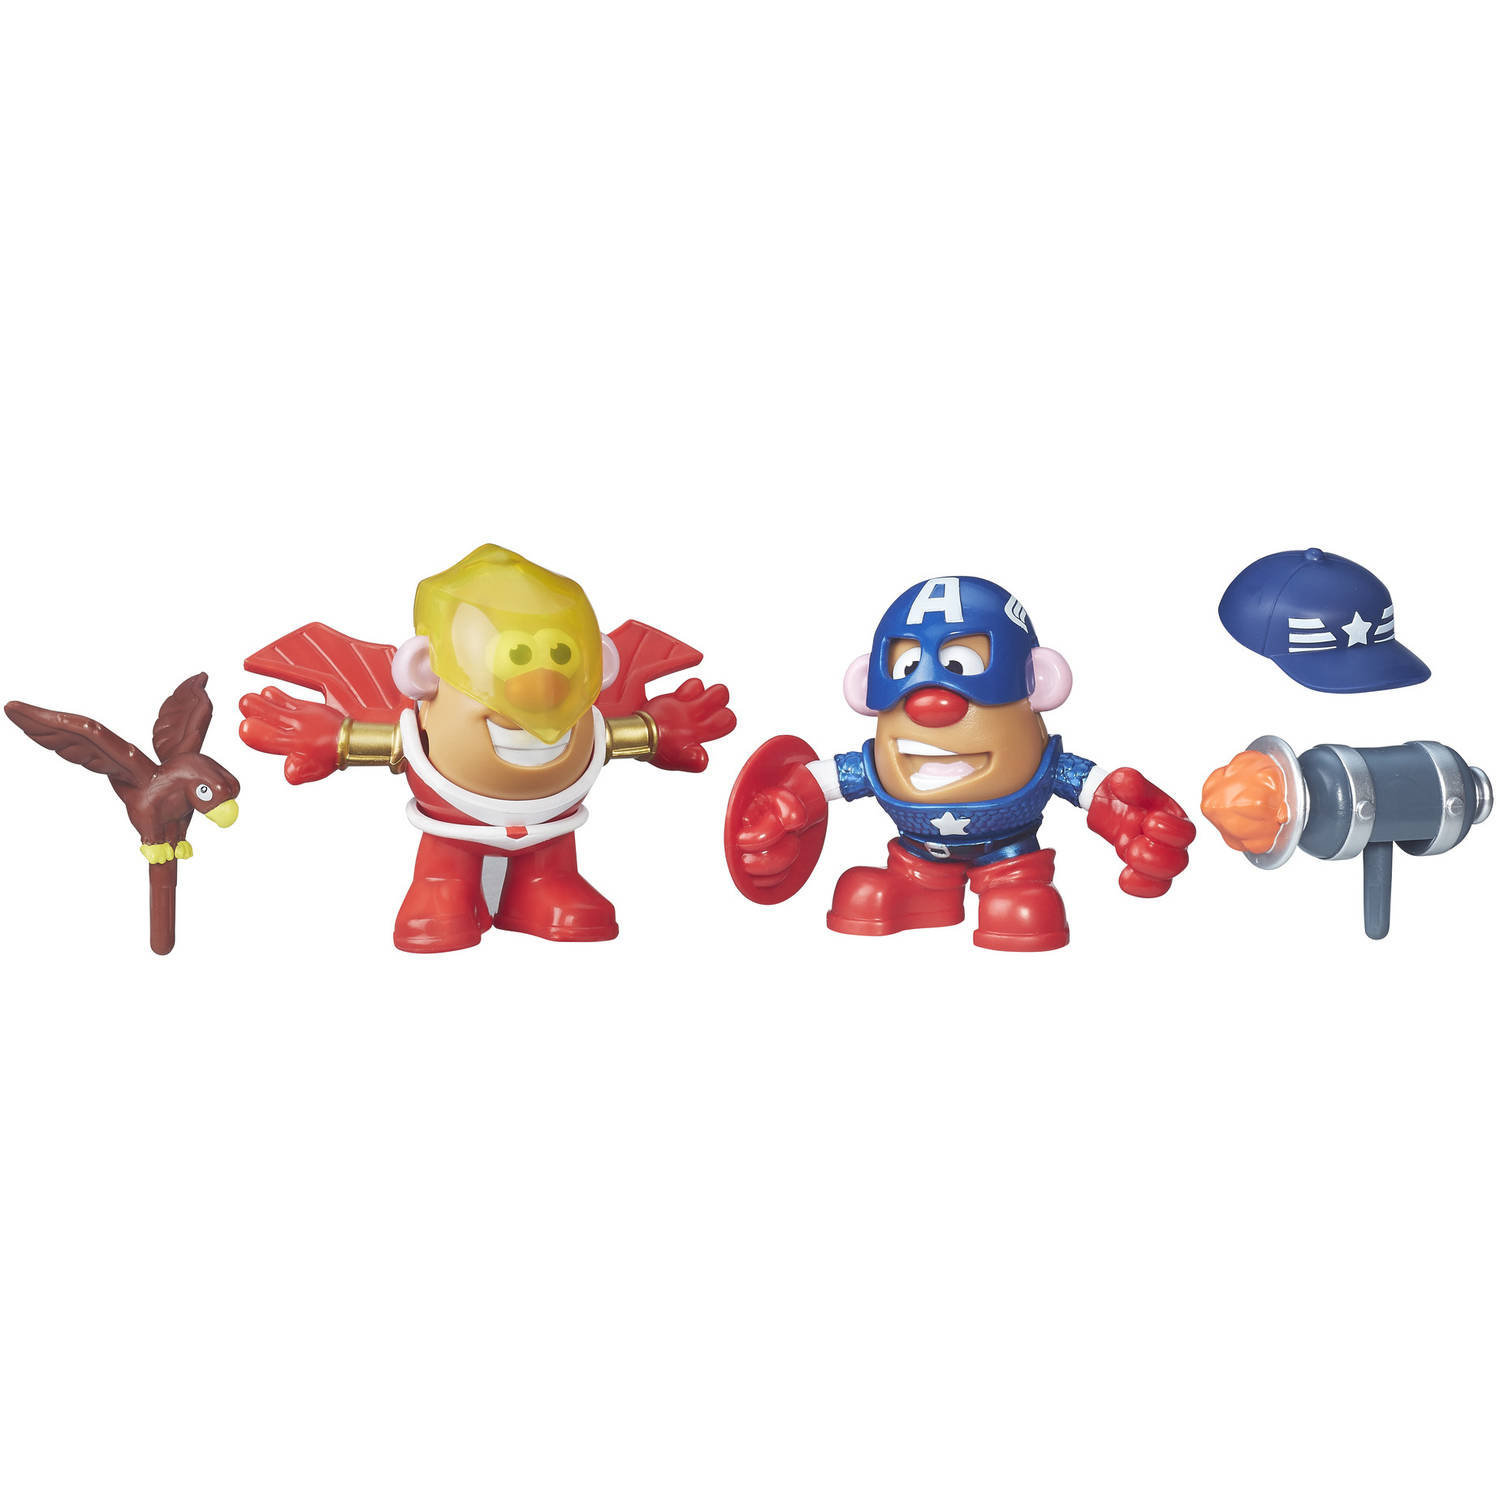 Playskool Friends Mr. Potato Head Marvel Captain America and Marvel's Falcon by Hasbro